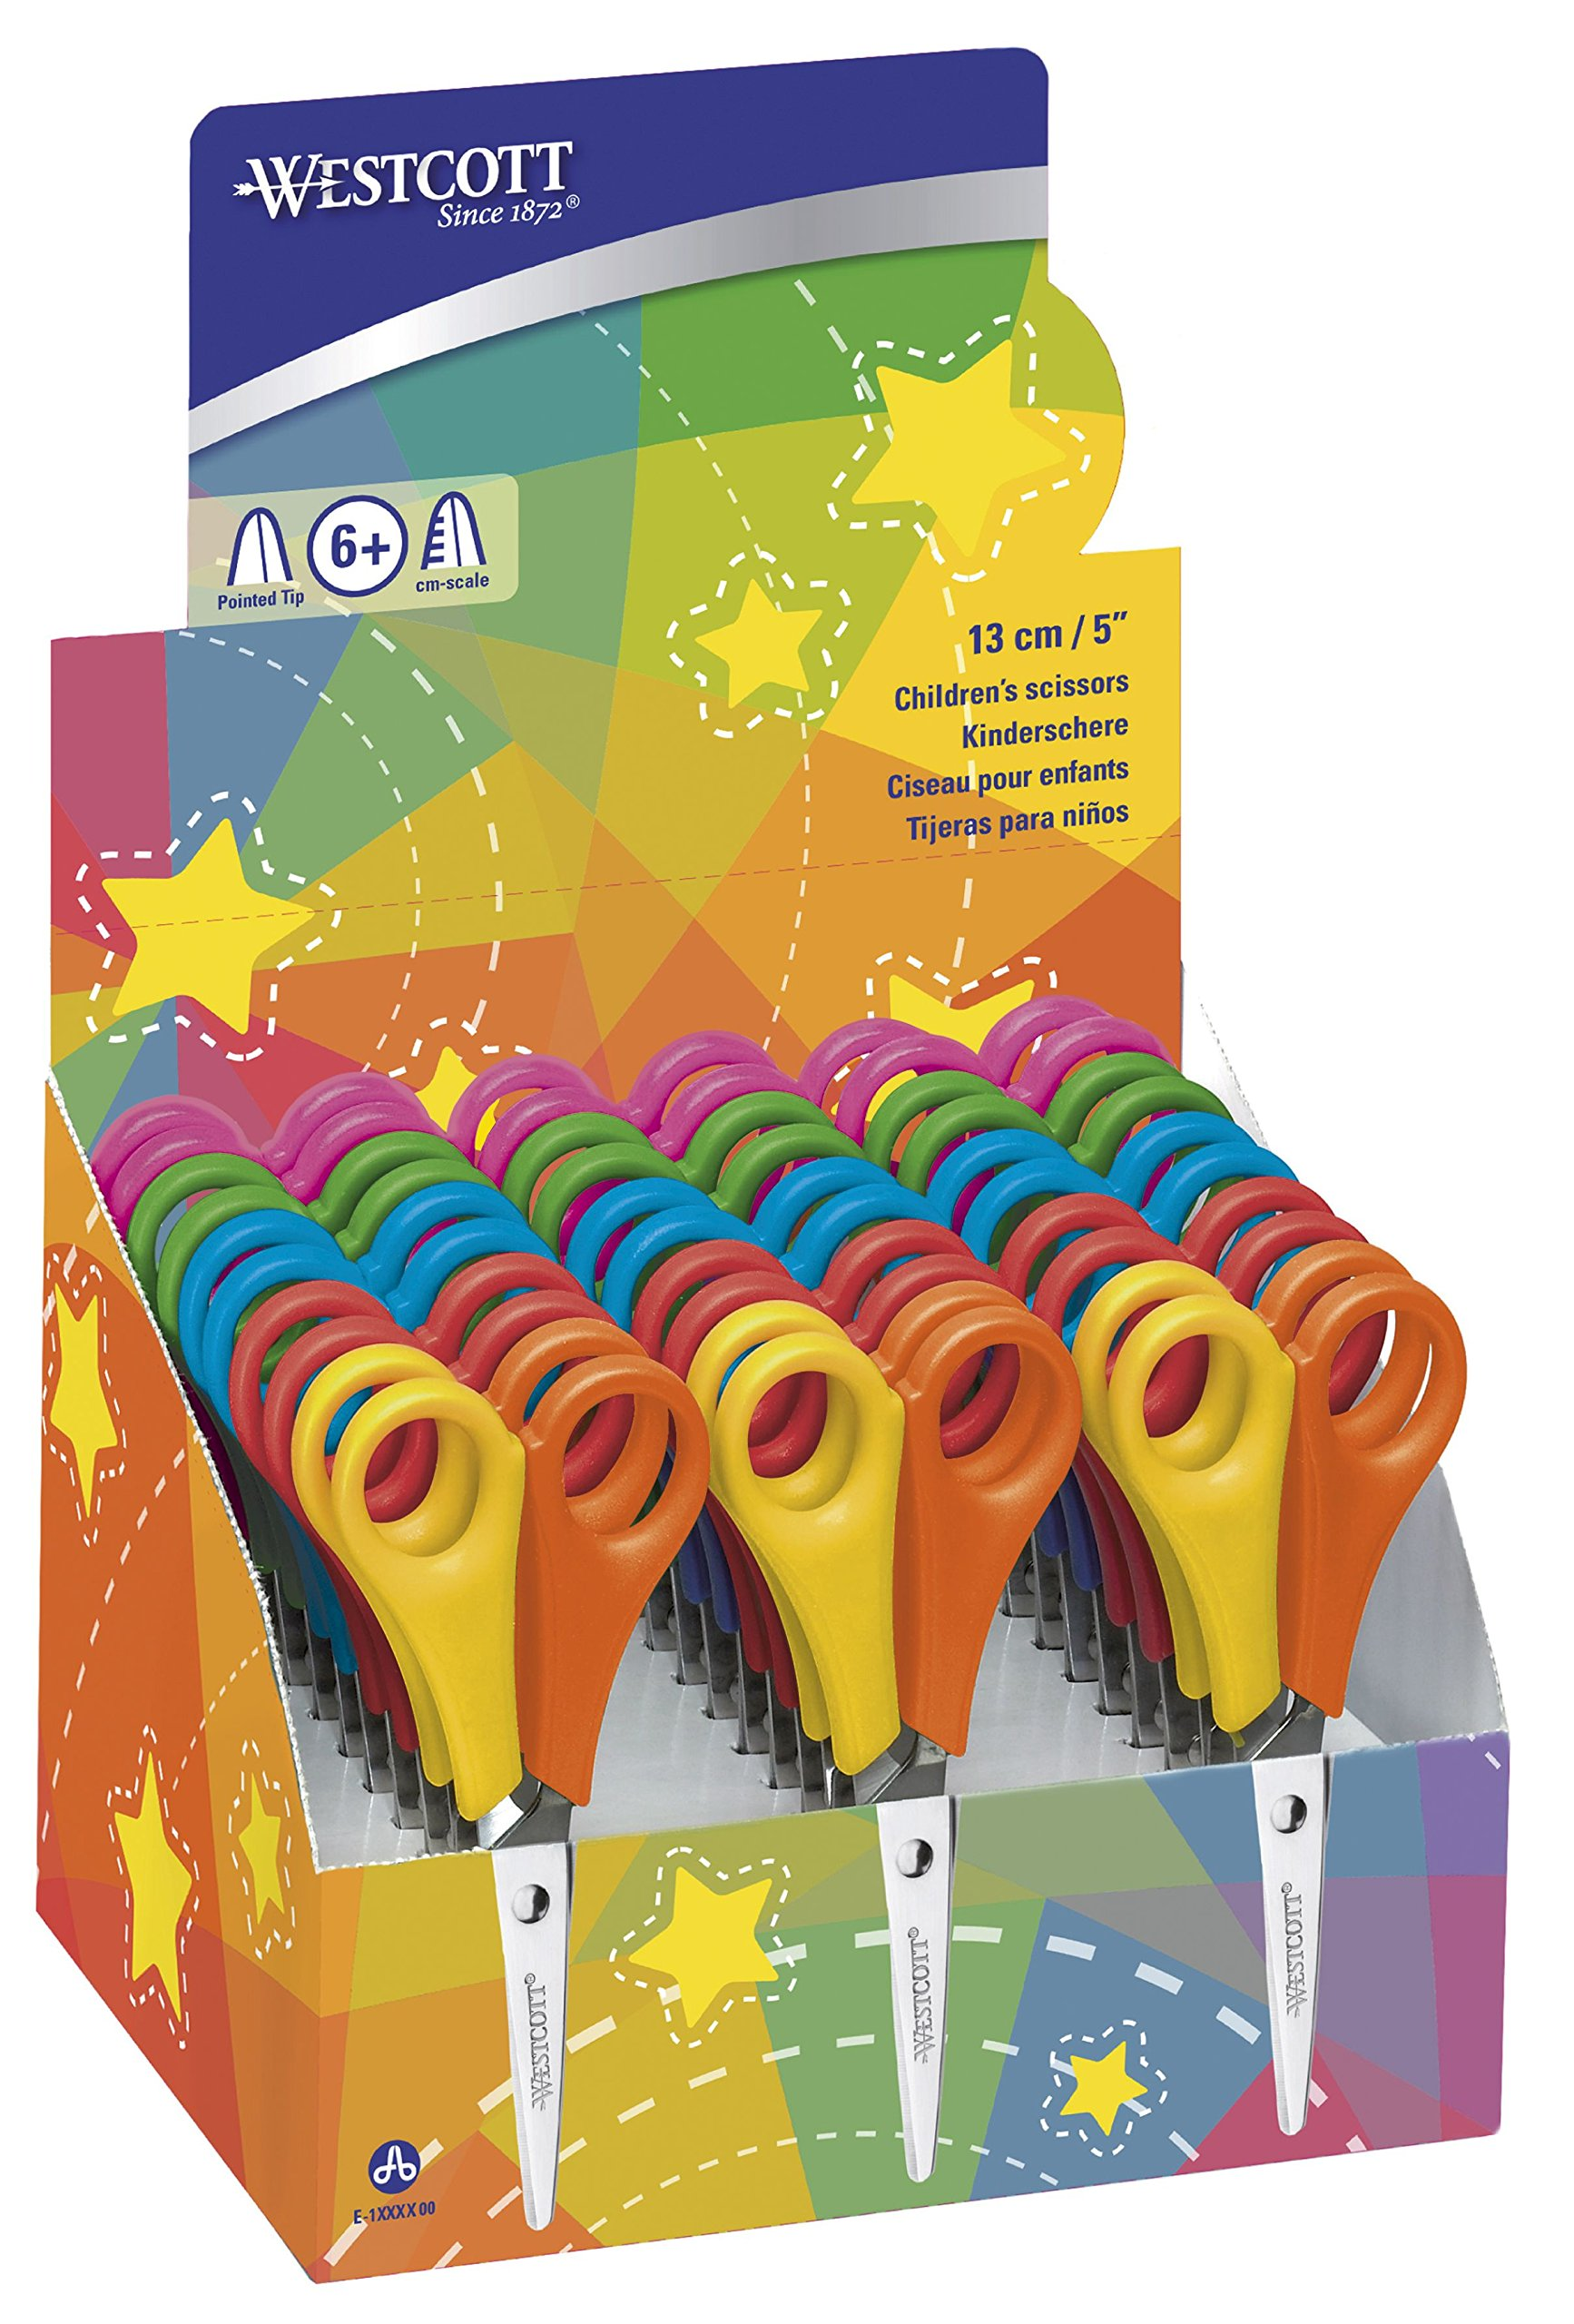 Westcott E-2151S Kids Scissor Witch cm-Scale, Pointed tip, 5''/13 cm, 30 pcs. Assorted, Right- and lefthanded use by Westcott